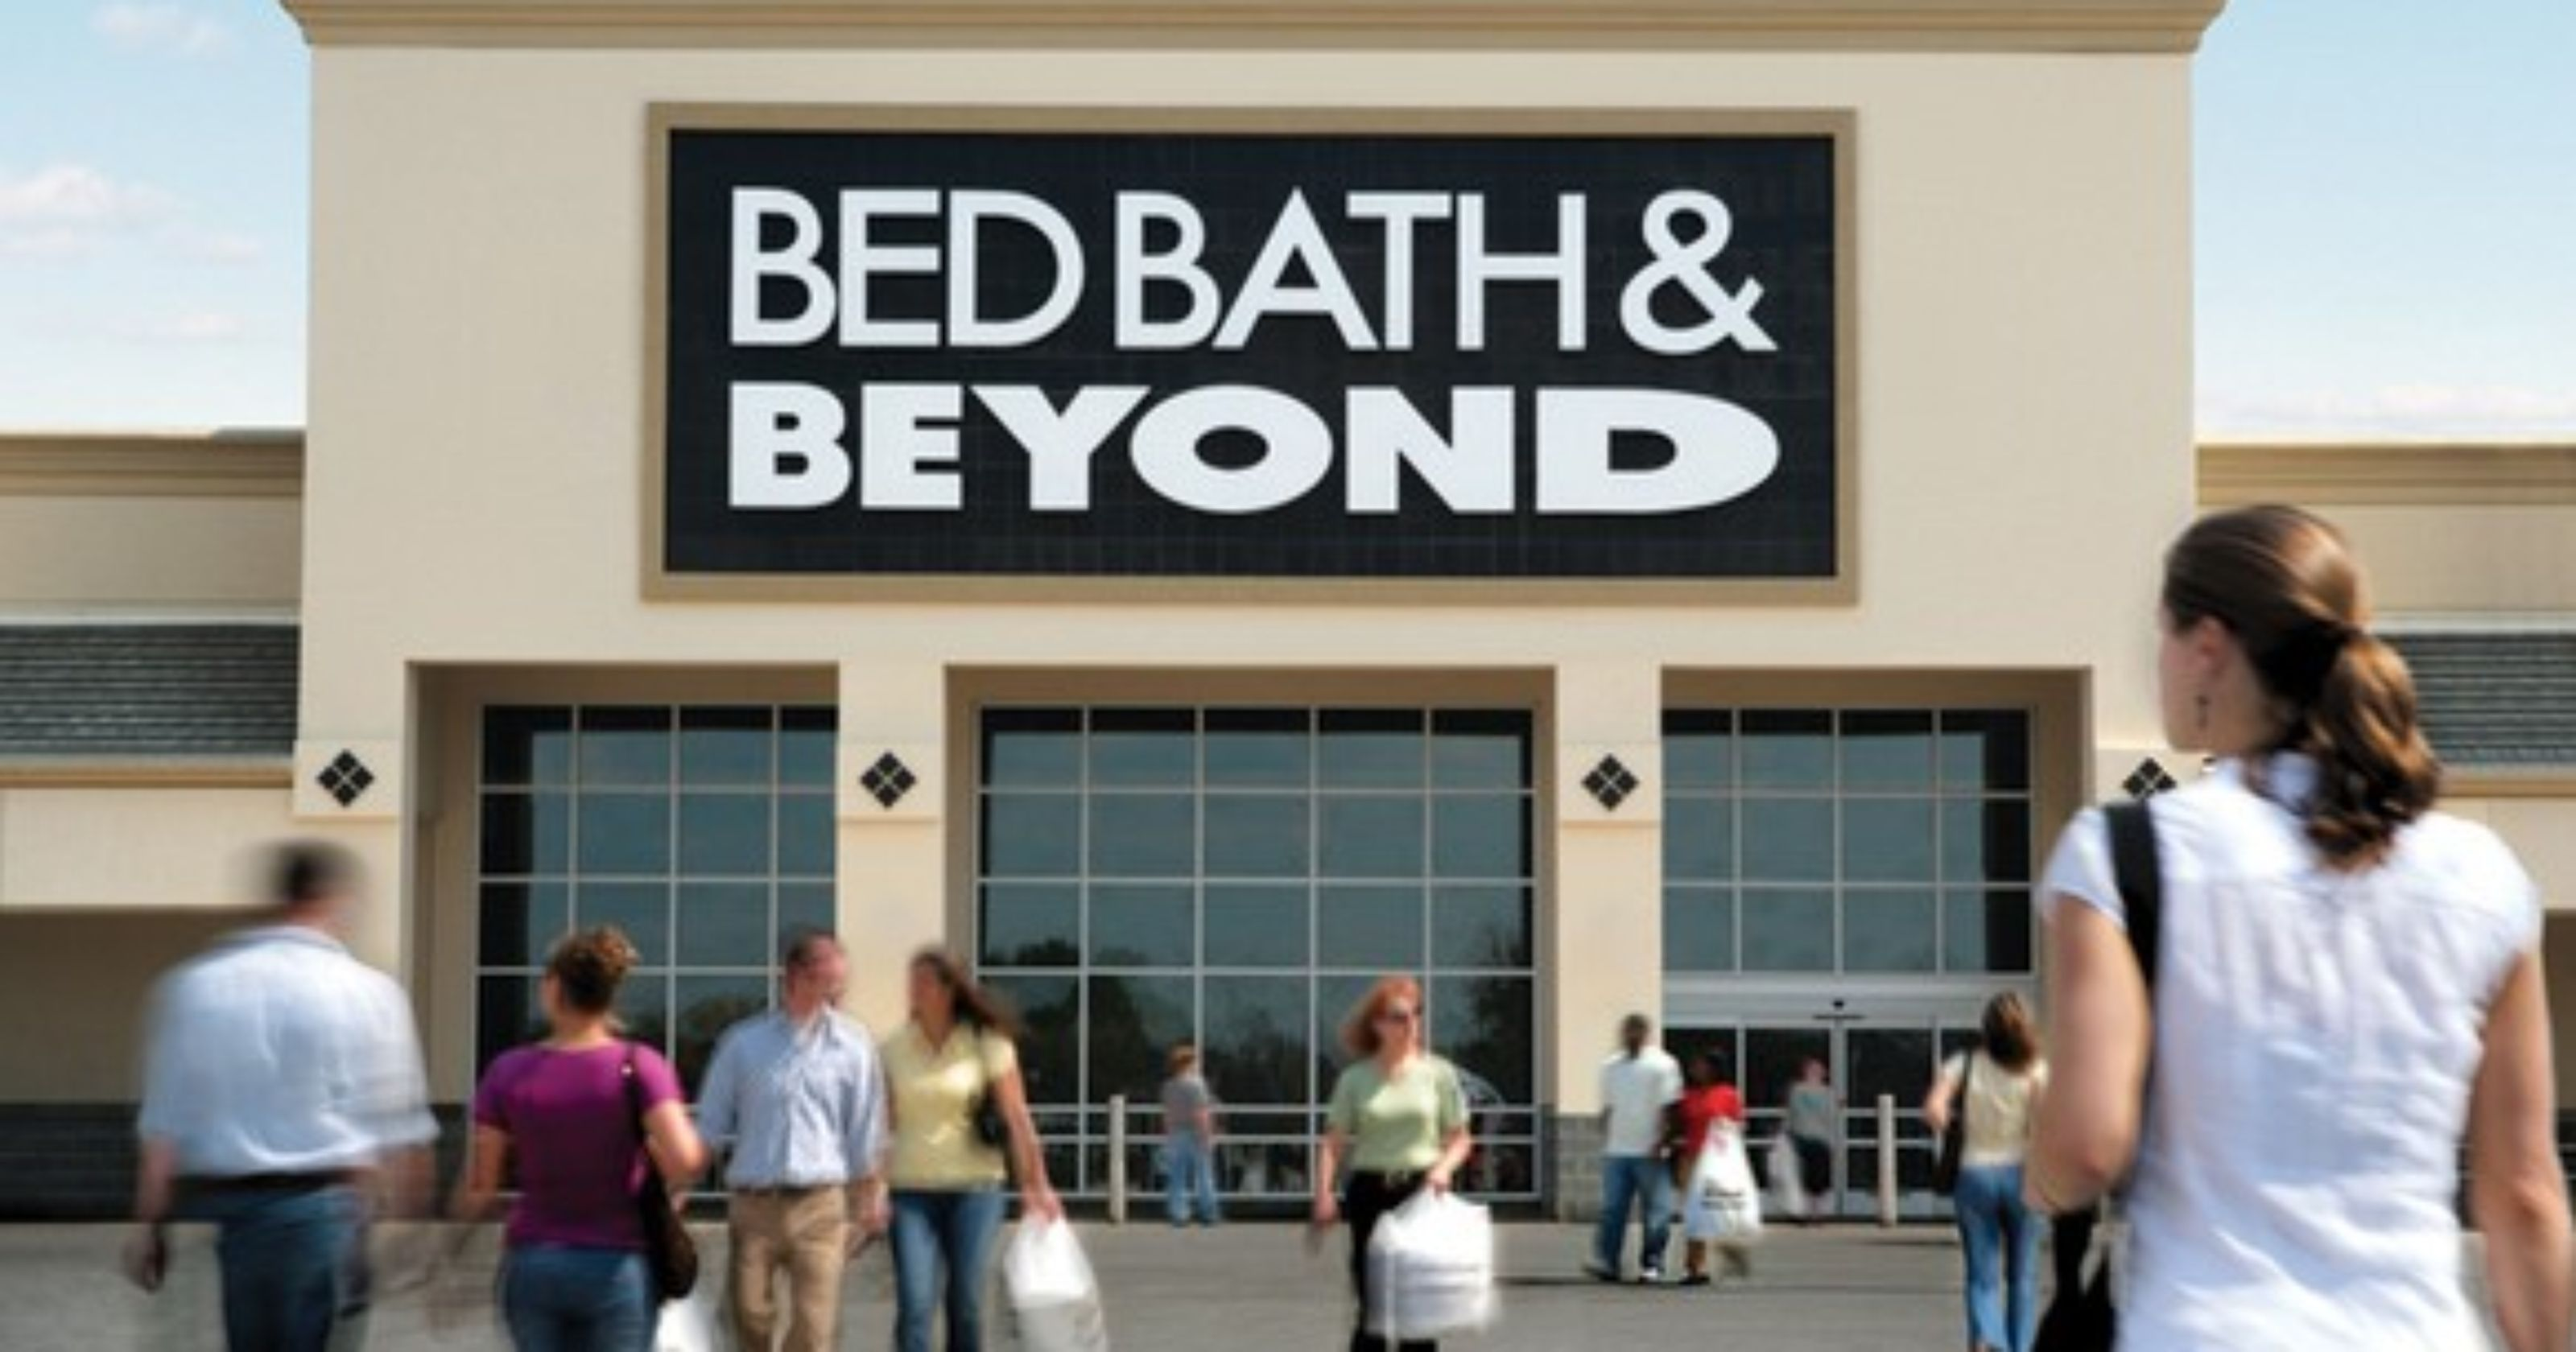 Bed Bath & Beyond is accepting Toys R Us gift cards but